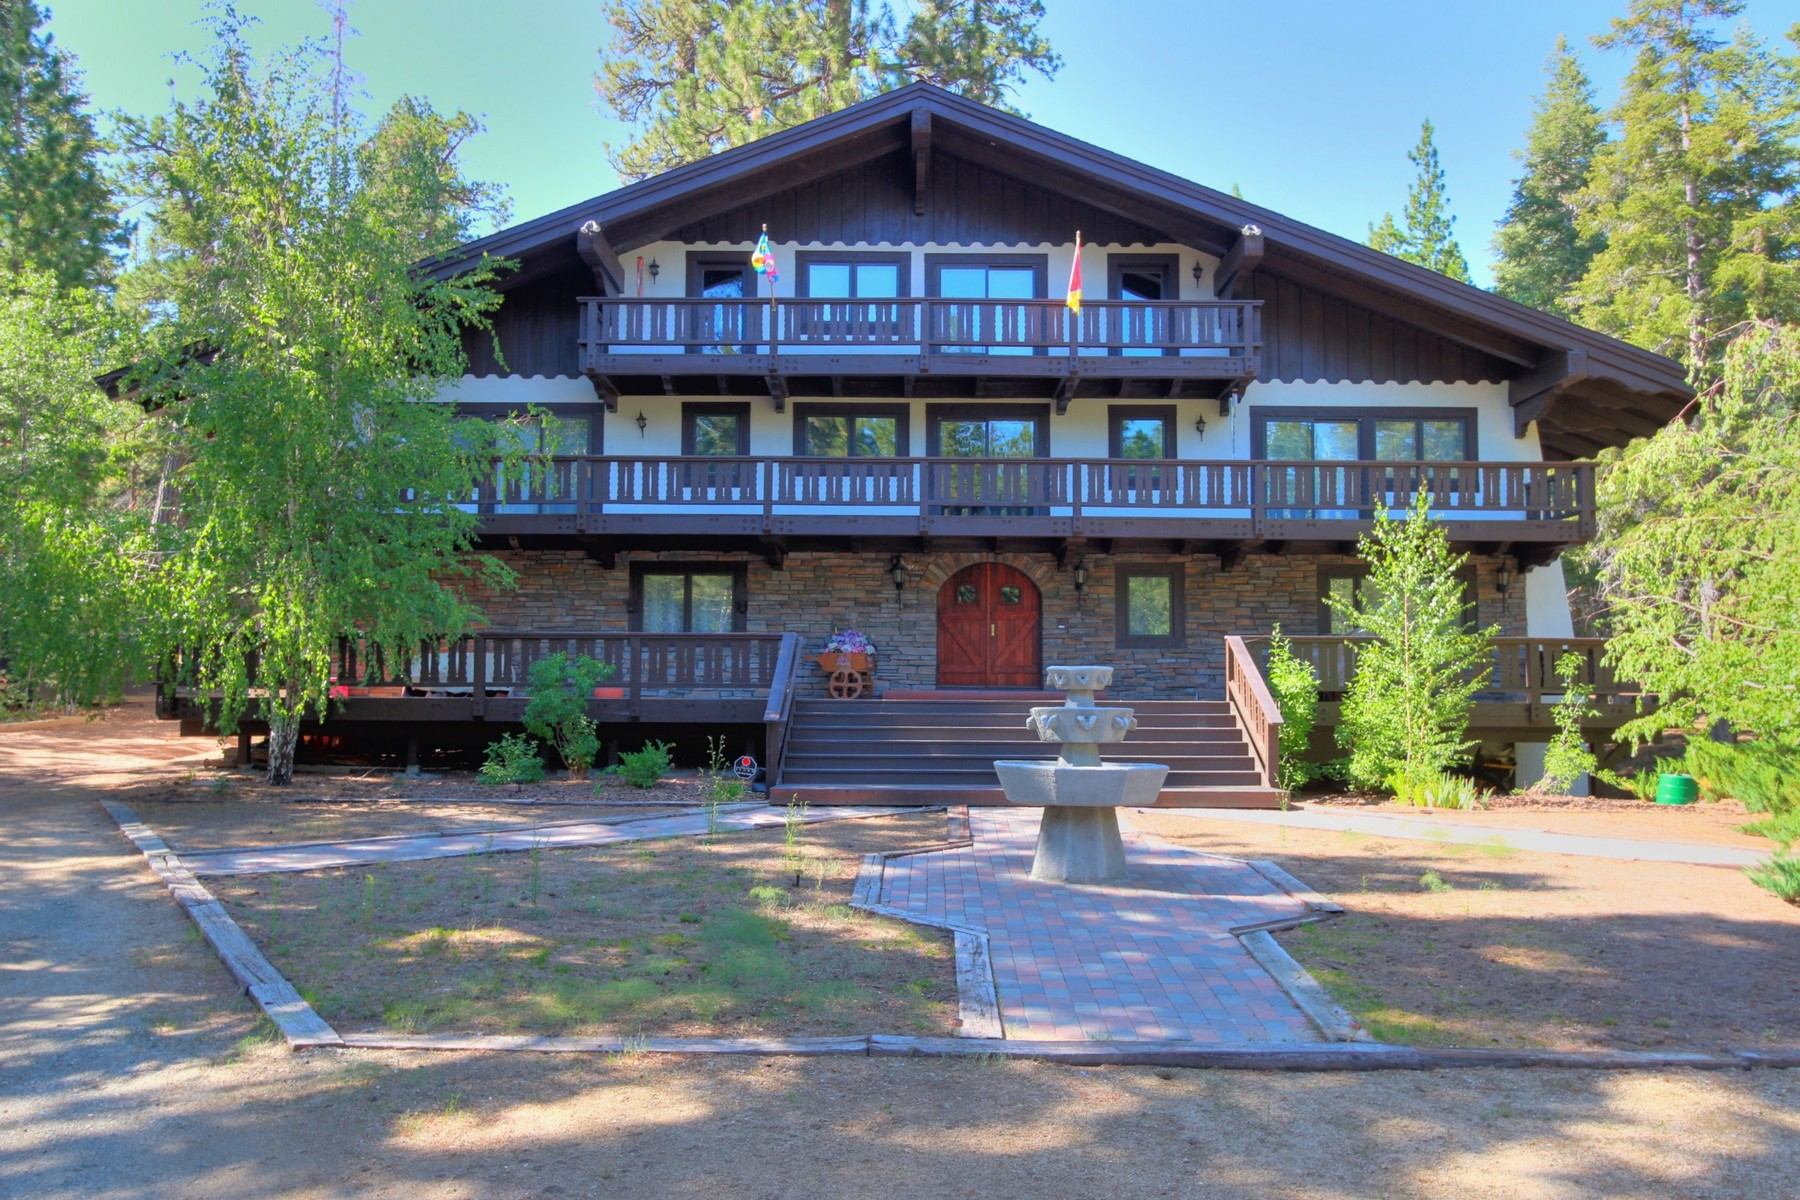 Casa Unifamiliar por un Venta en 42223 Switzerland Drive Big Bear Lake, Ca. 92315 Big Bear Lake, California 92315 Estados Unidos